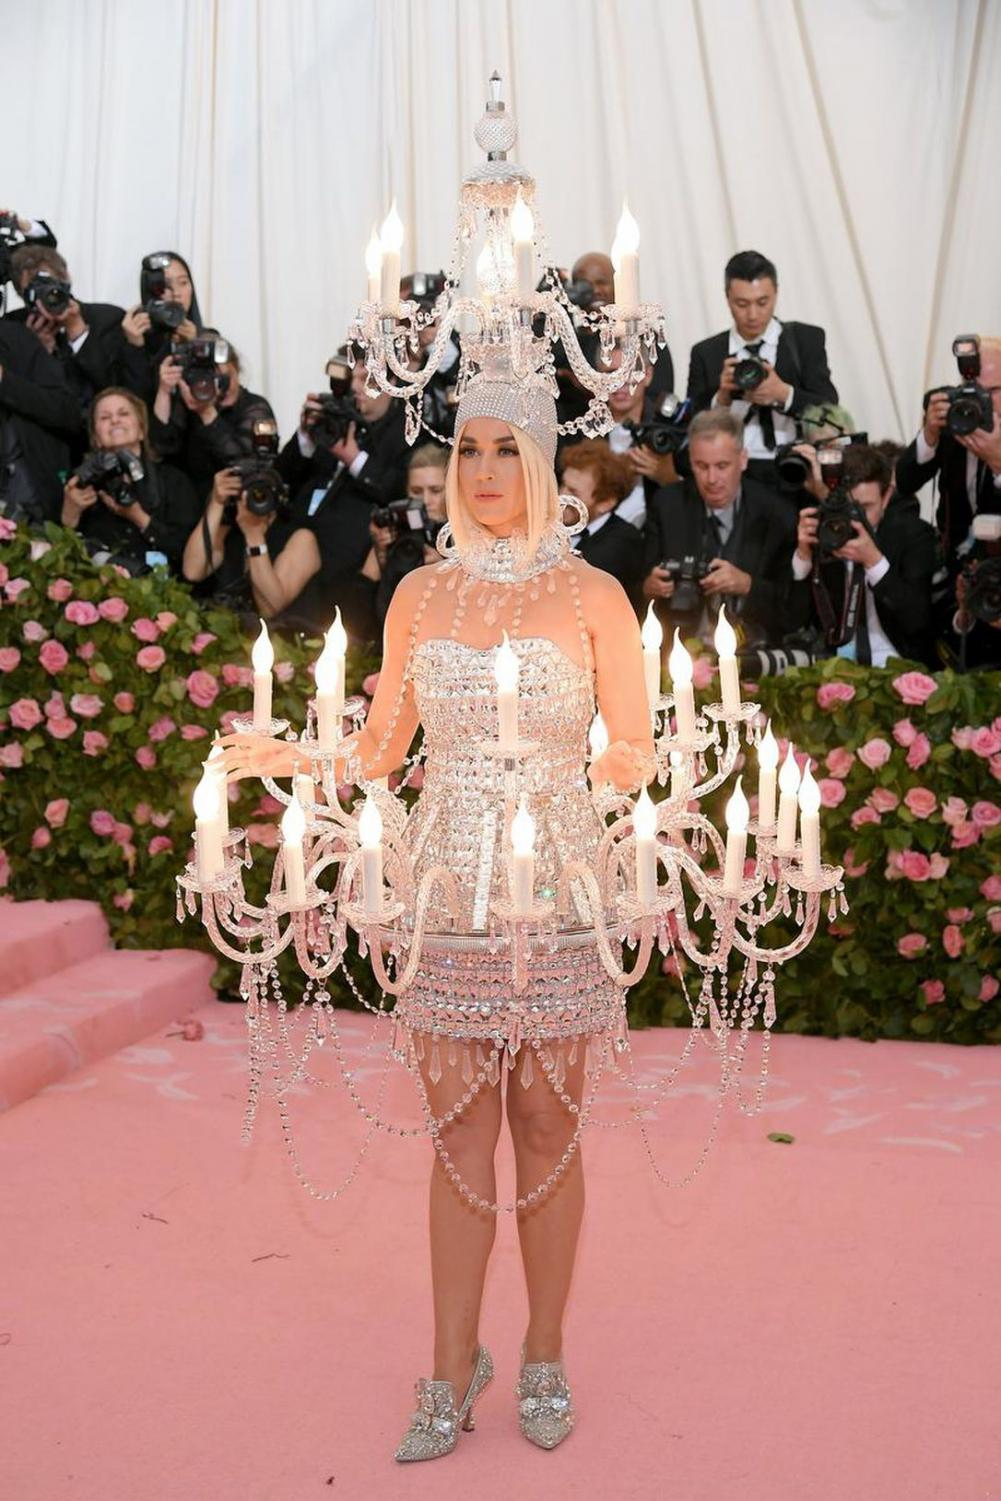 Katy+Perry+in+Moschino.+I+honestly+don%27t+know+what+to+say+about+this+outfit.+The+main+question+I+have+is%2C+does+she+look+like+a+candle+or+a+chandelier.+10000%2F10+